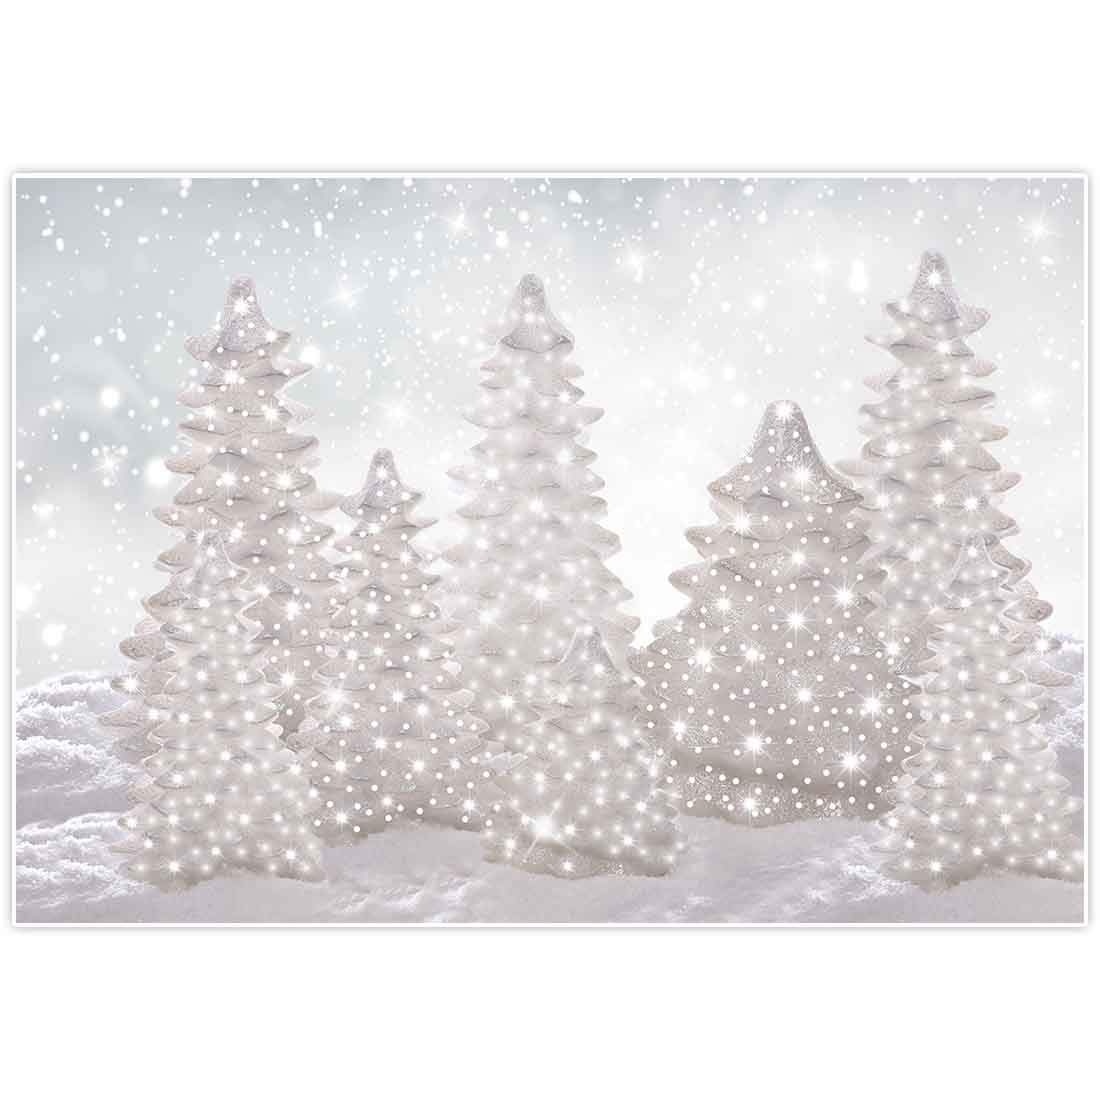 Allenjoy 7x5ft Fabric Winter Wonderland Backdrop New Year Eve Party Supplies for NYE Events Christmas Snowflake Snow Tree Home Decorations Baby Shower Cake Smash Props Photography Background Favors